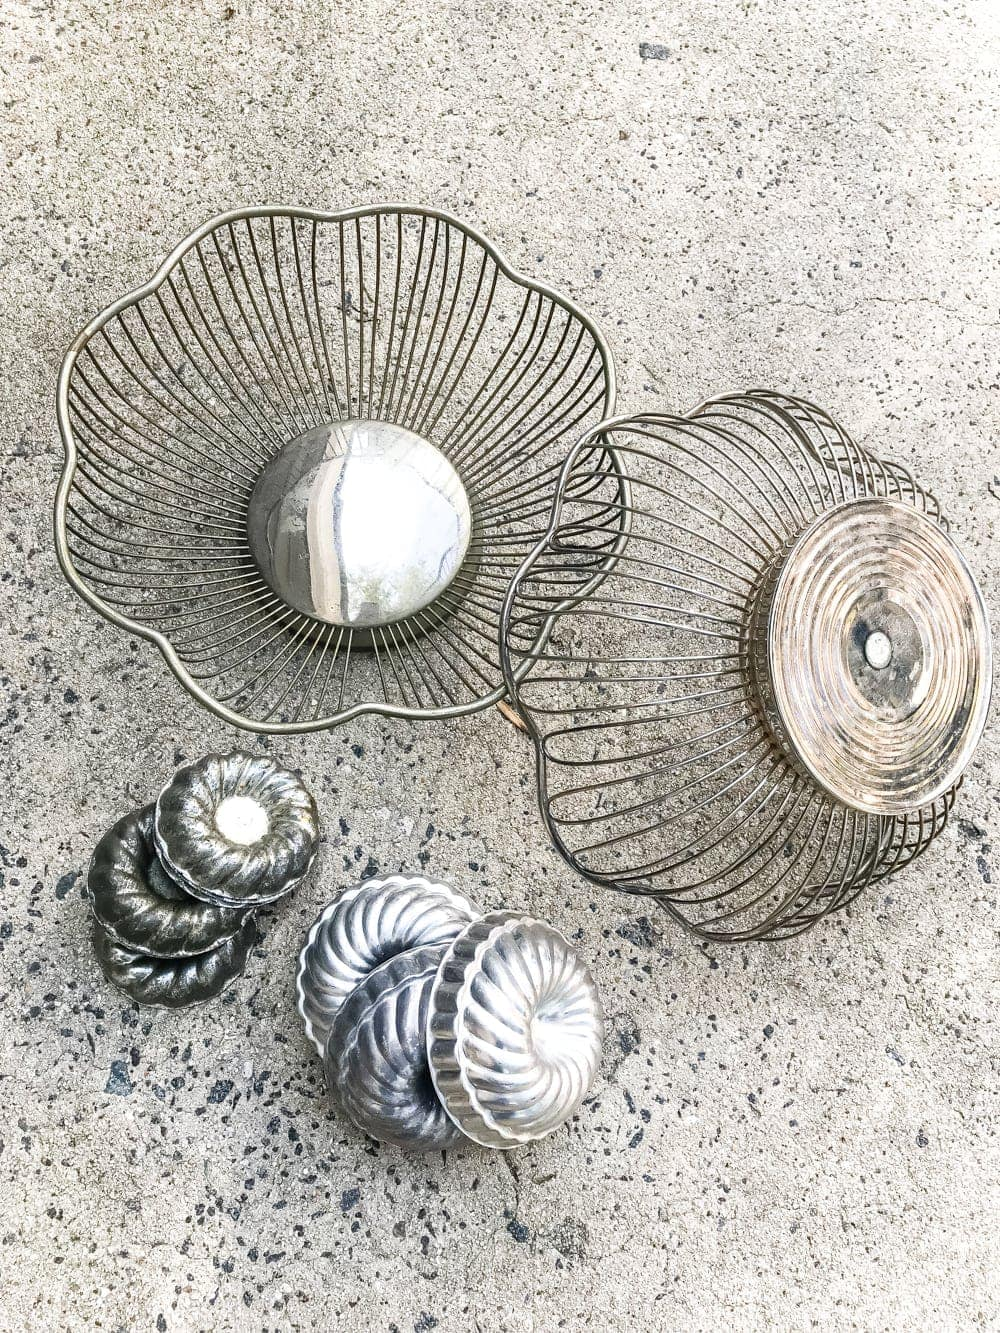 DIY wire basket and bundt pan pumpkins craft